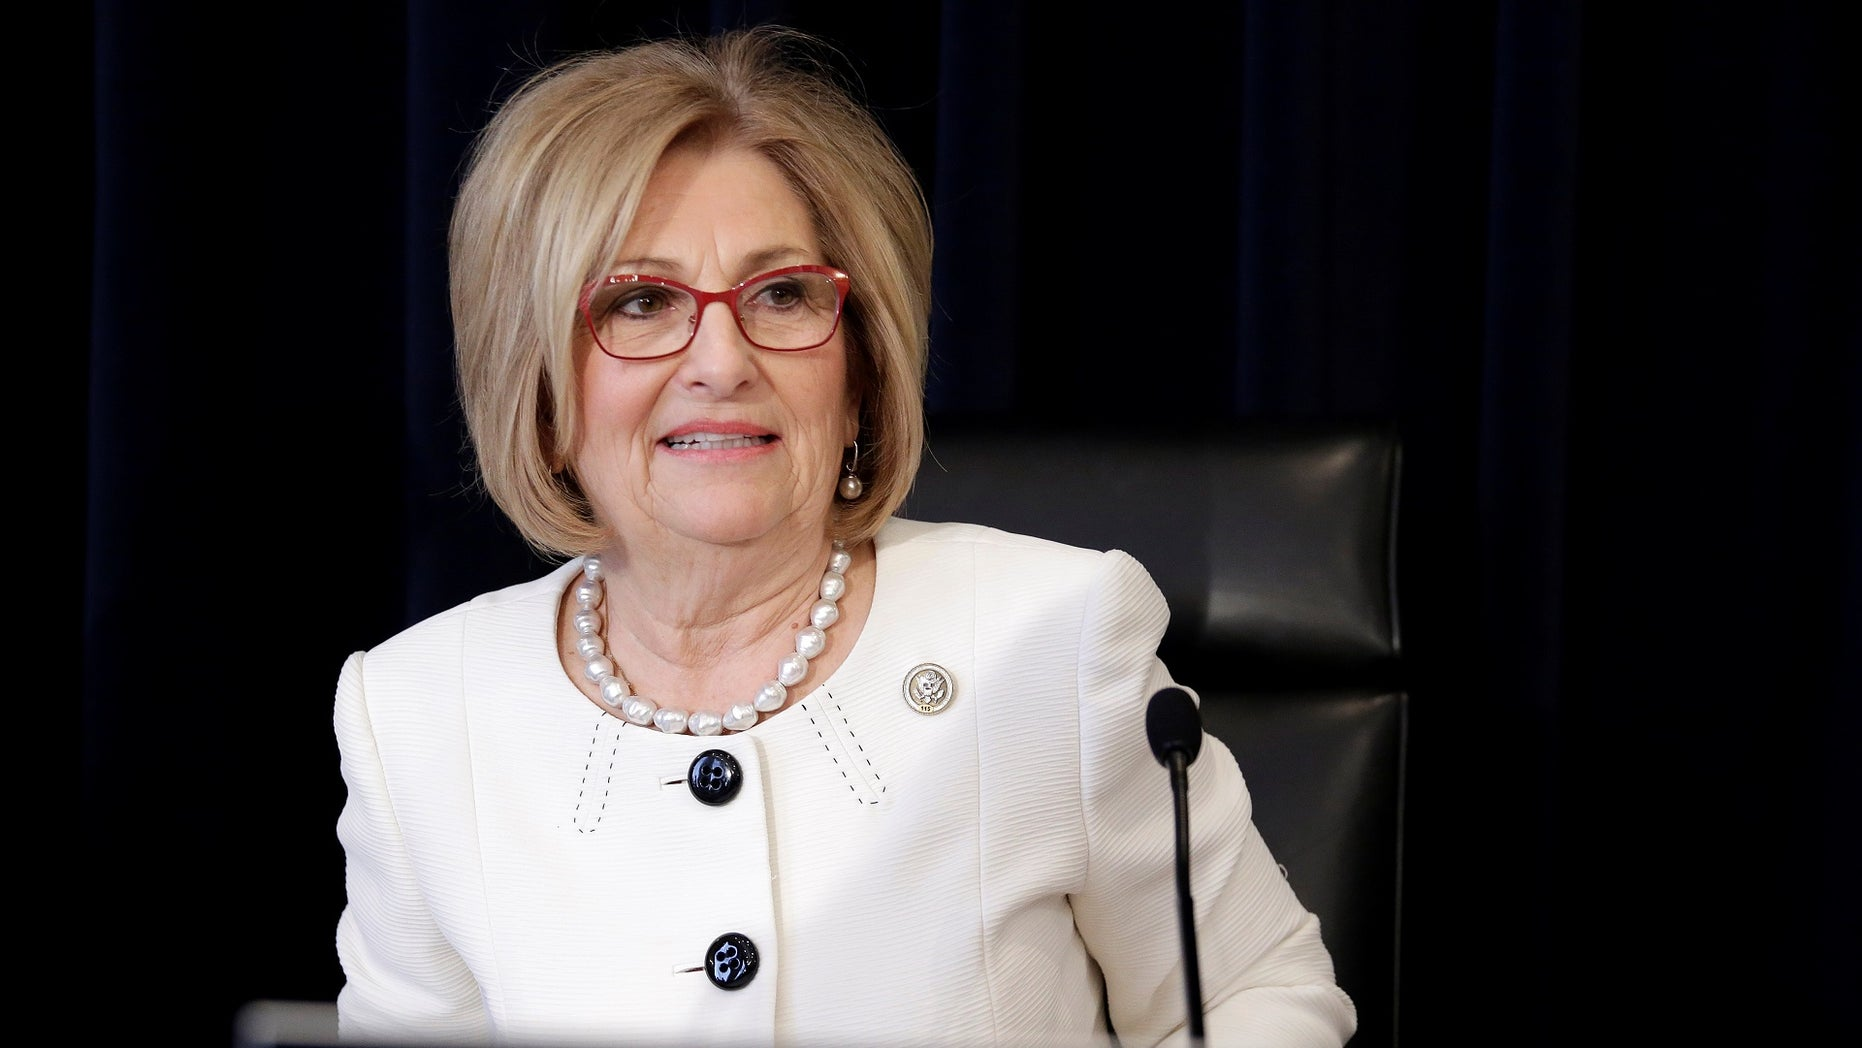 Rep. Diane Black, R-Tenn., said a number of factors can contribute to what leads a young person to commit a school shooting, including the deterioration of family, violent movies and pornography.